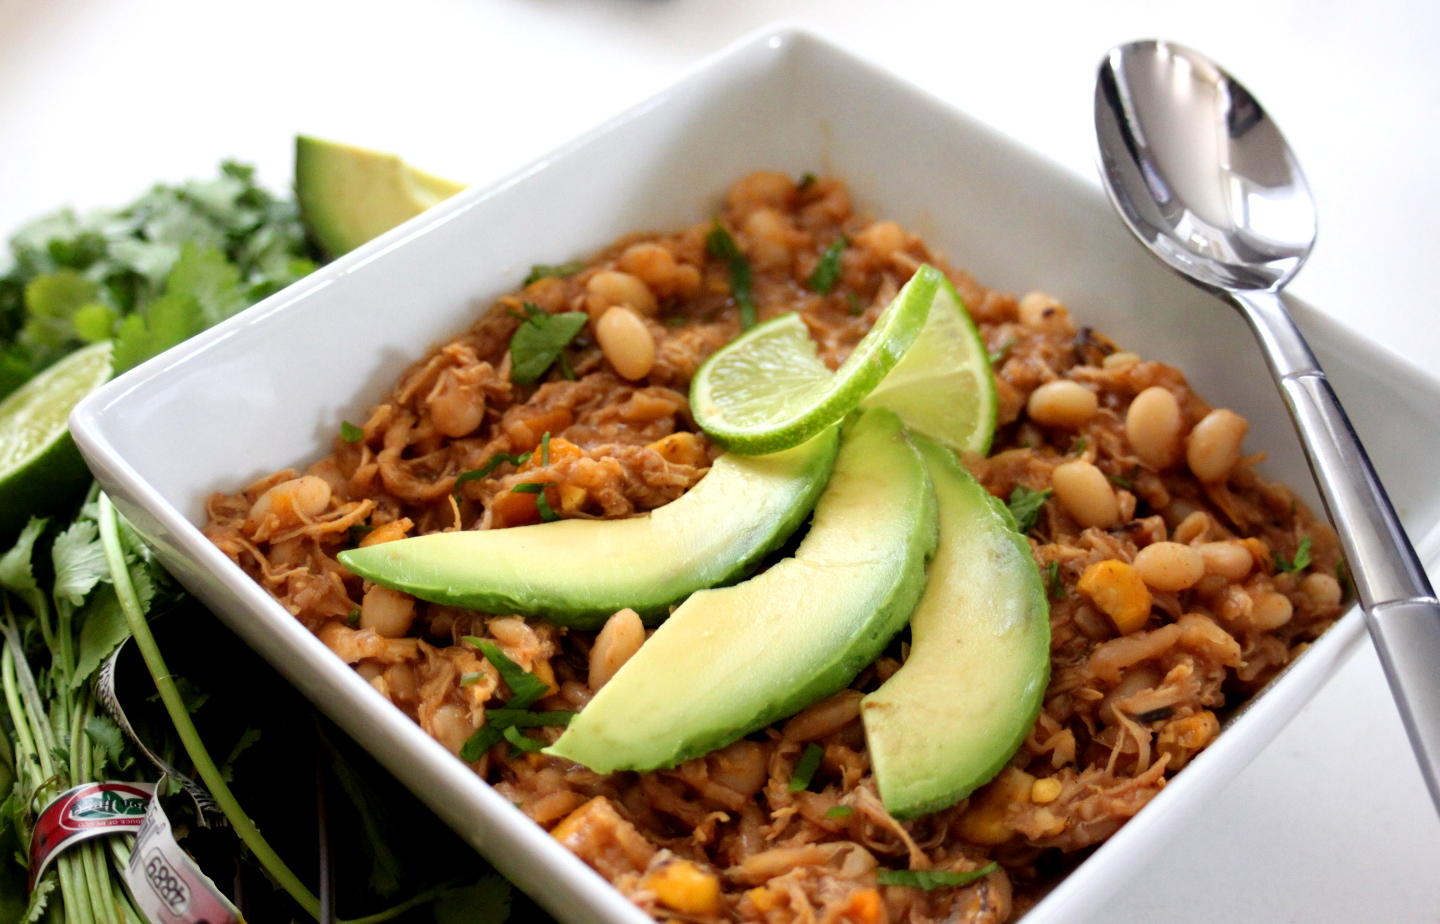 chipotle chicken chili delicious and easy chipotle 30 minute easy ...